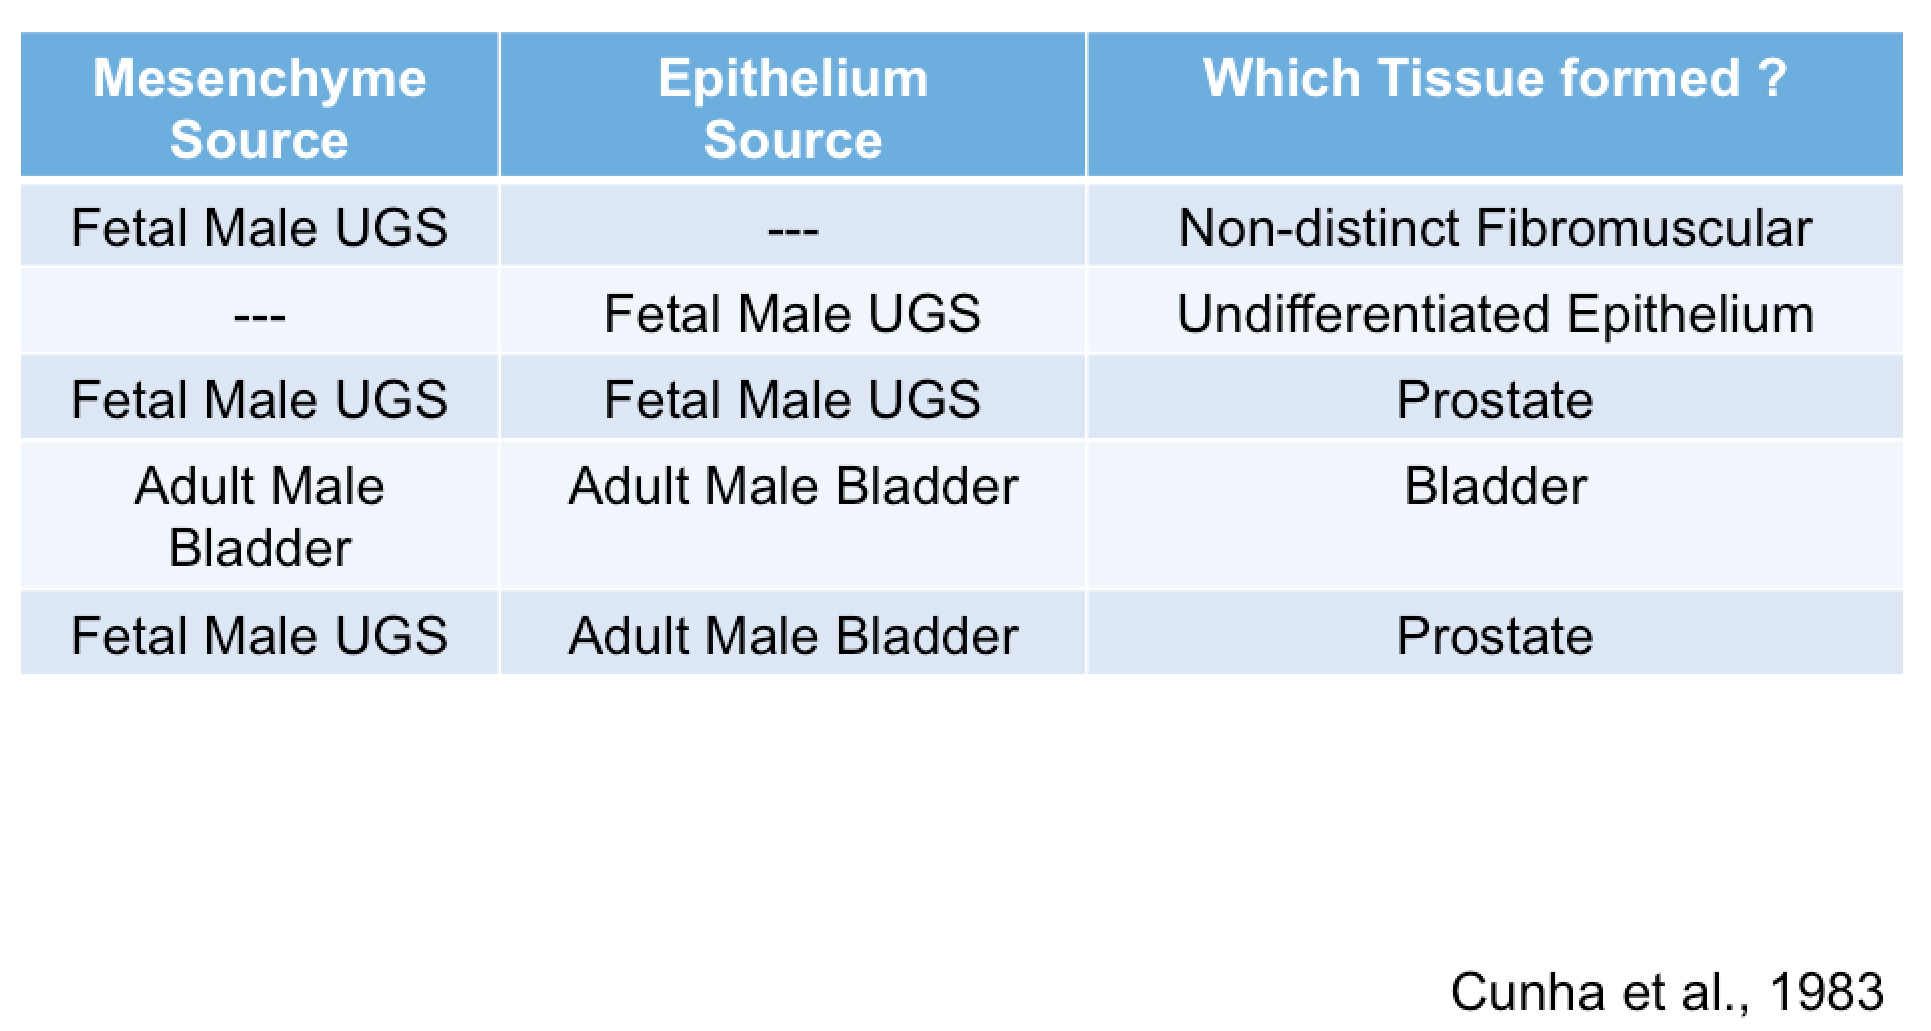 Table of tissue formed due to mesenchyme or epithelial source